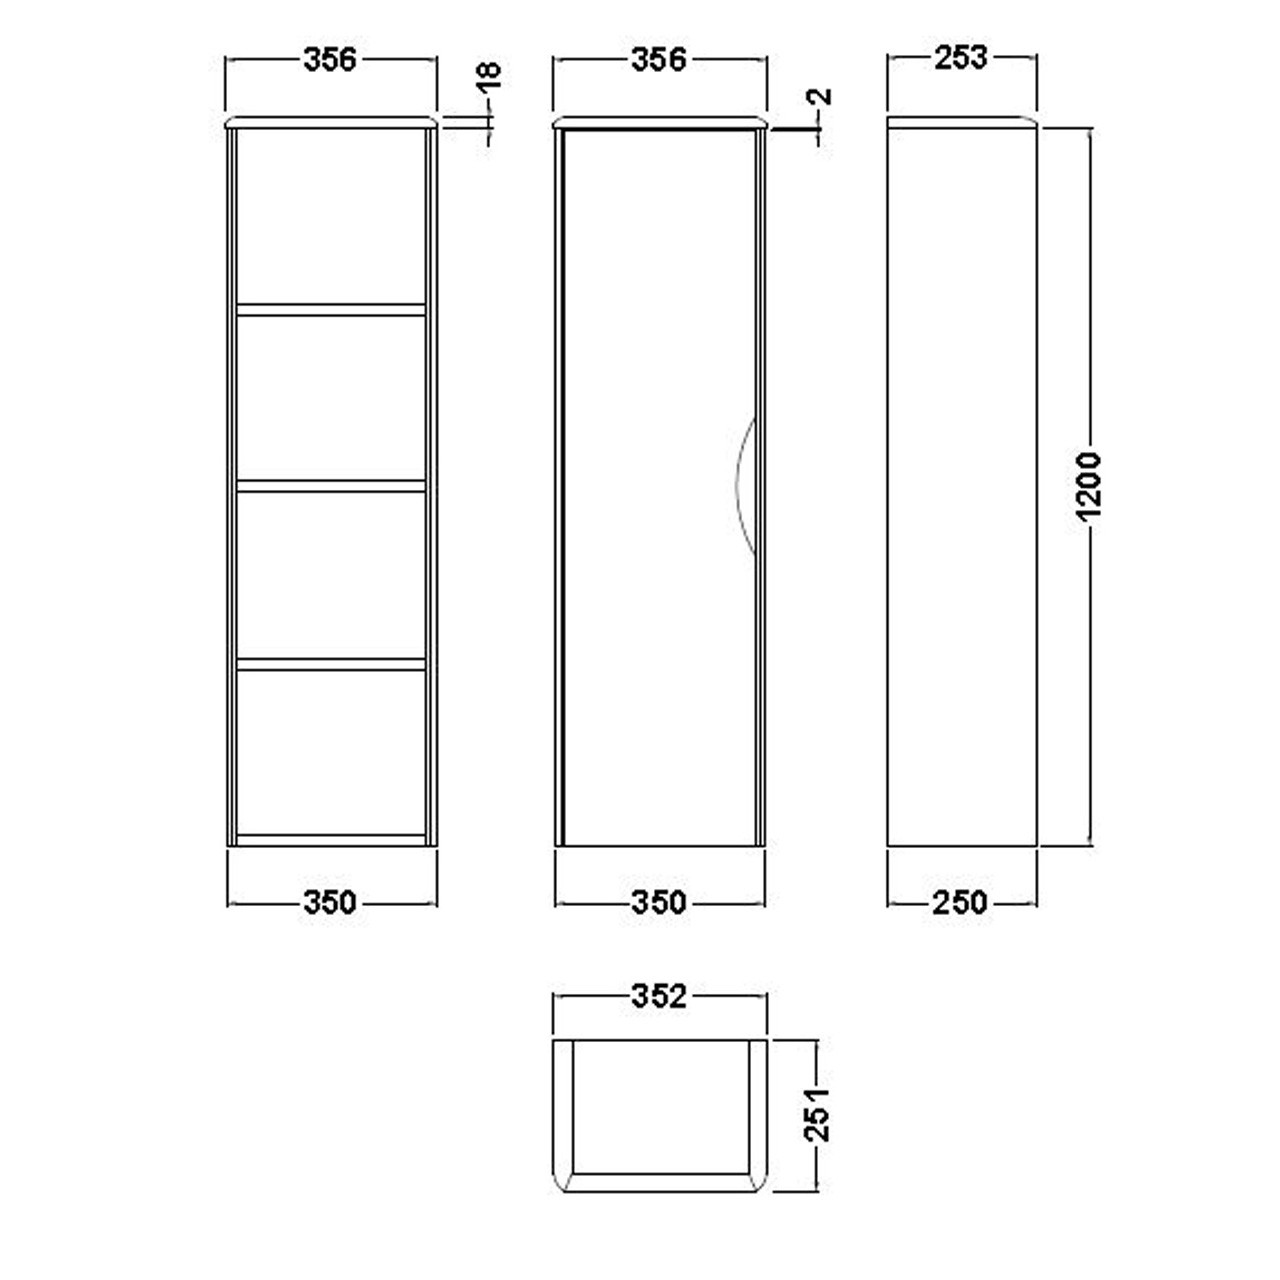 Premier Midnight Grey Eclipse 350mm Wall Hung Tall Cabinet - PMW363